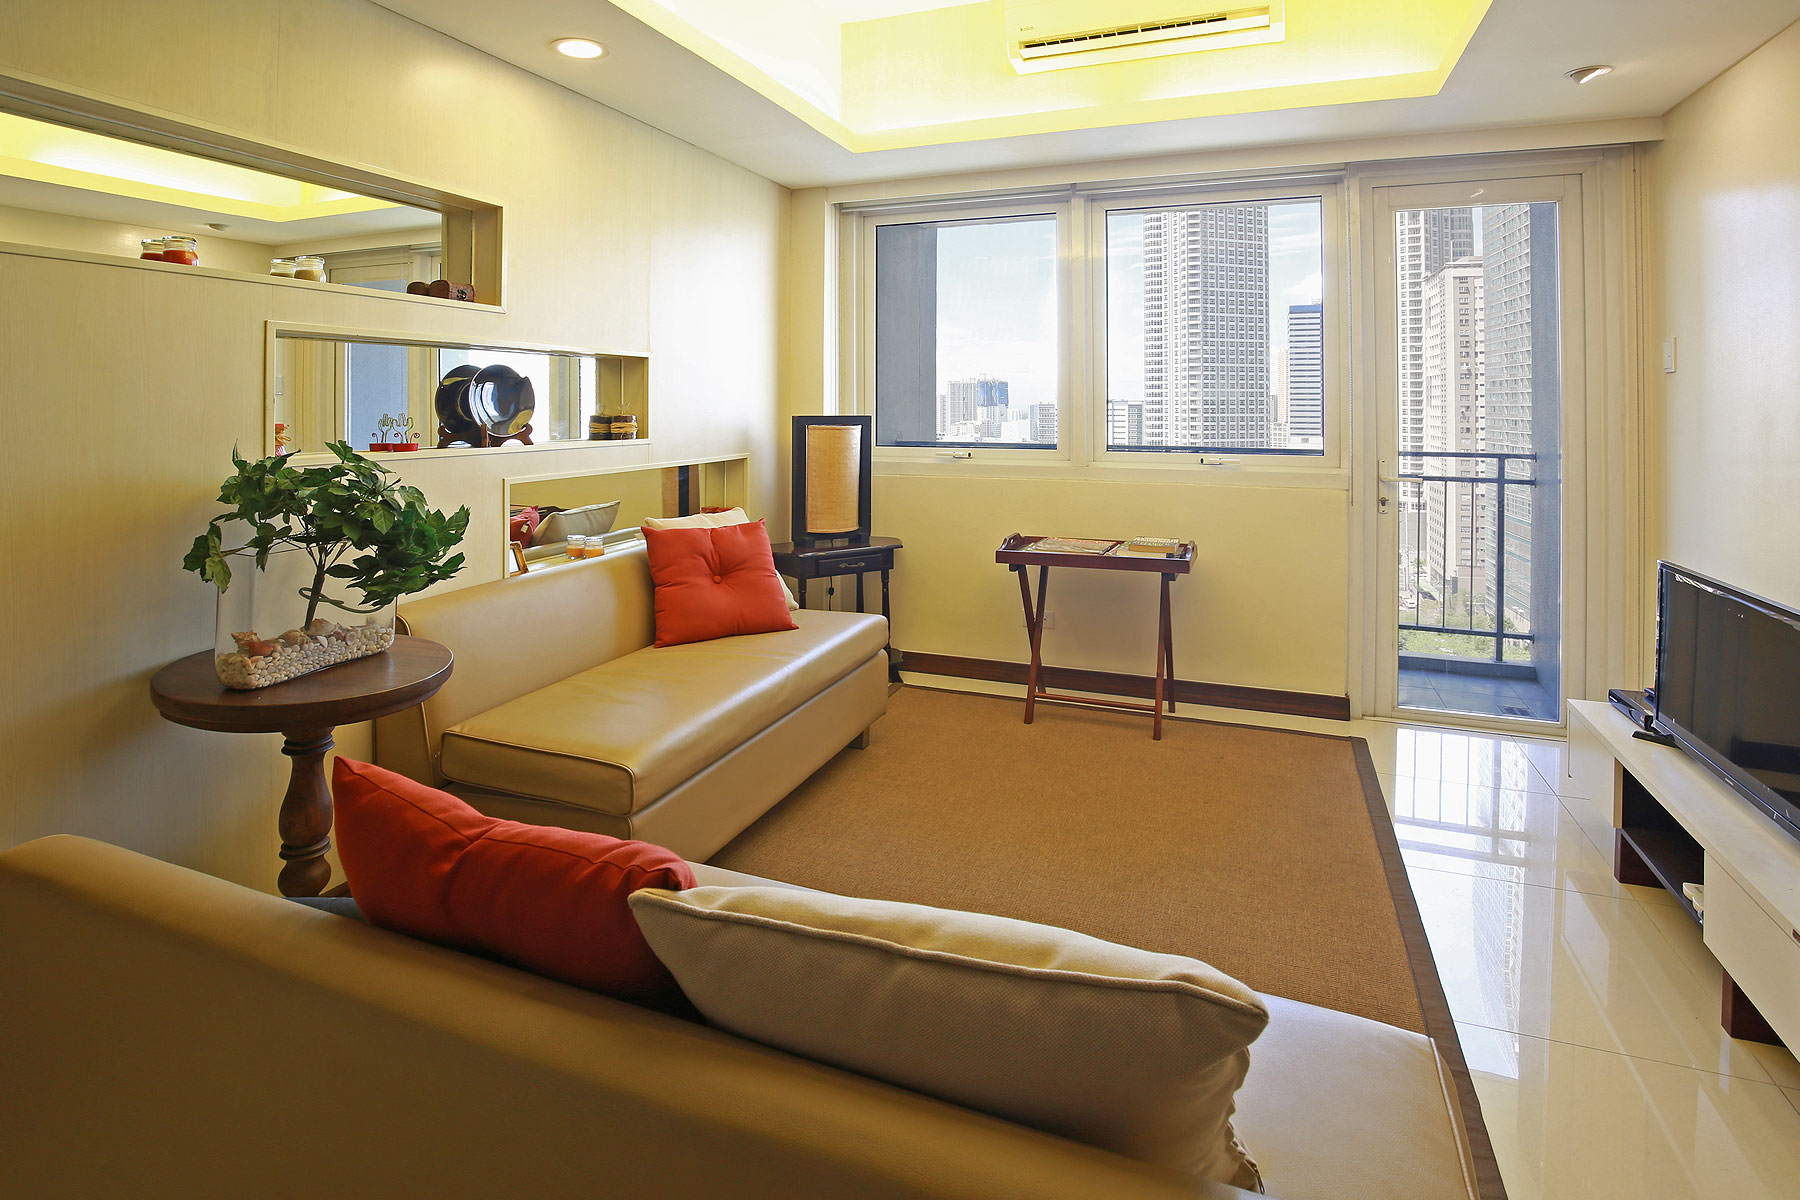 Condominium for Sale at A Small One Bedroom with Scenic View of the City Mandaluyong City, Luzon 1155 Philippines